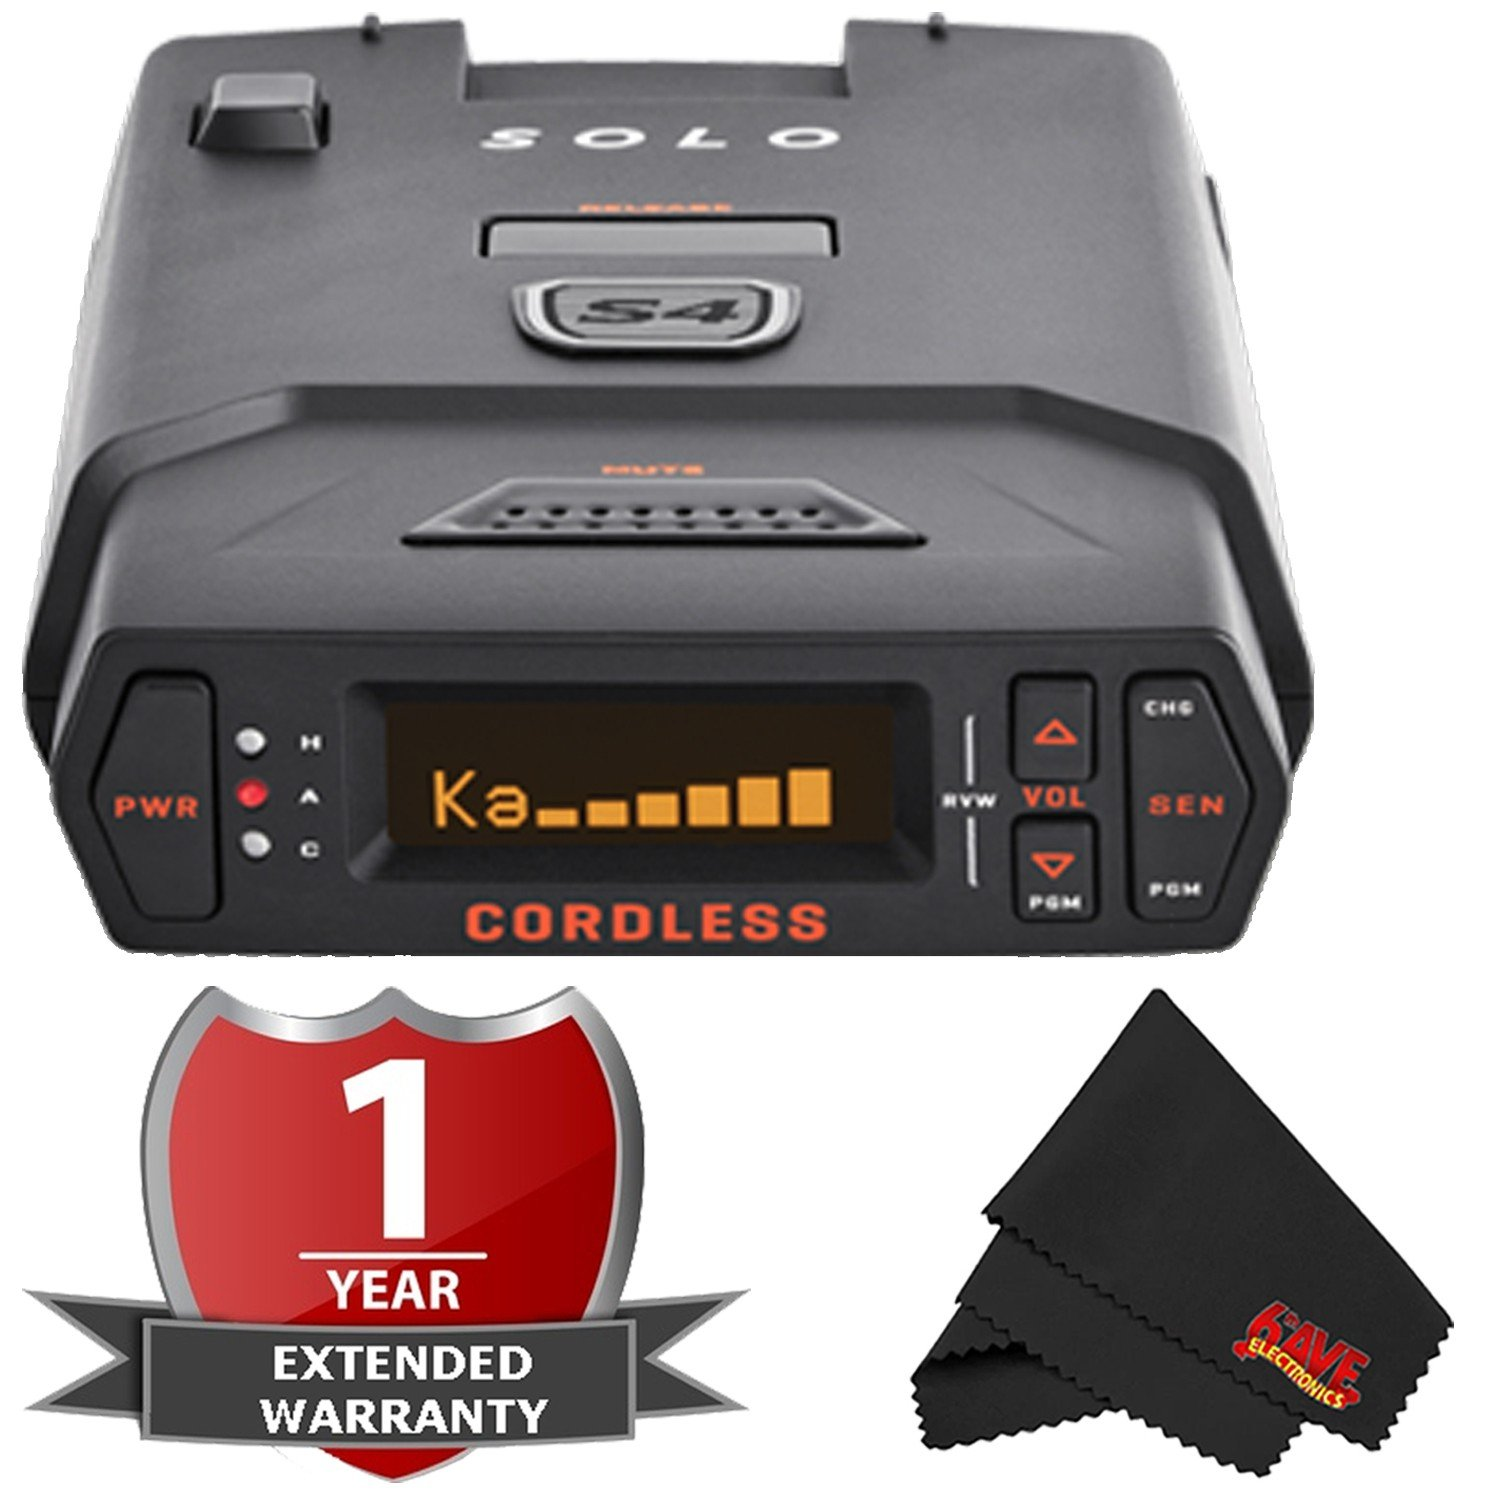 Escort Solo S4 Cordless OLED Display Long Range Laser/Radar Detector with 2 Year Warranty